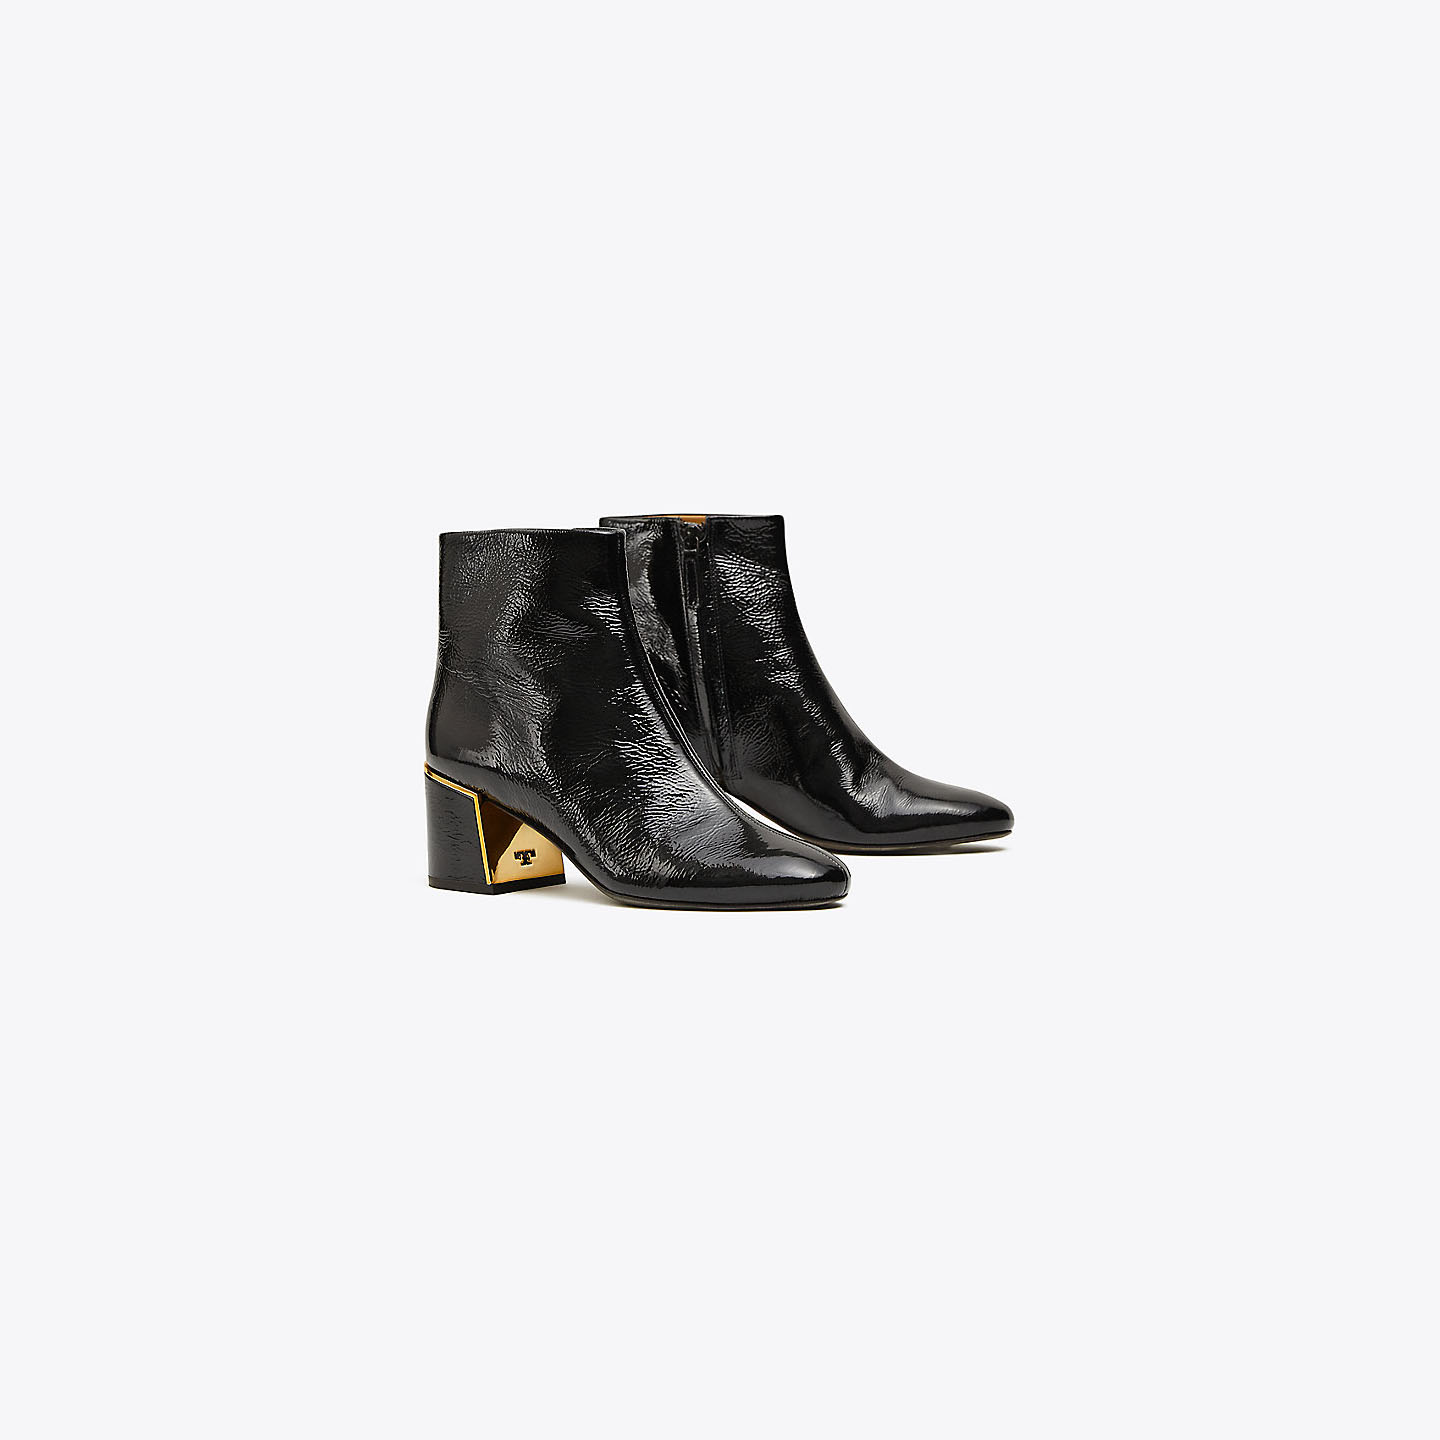 Best Deals on Tory Burch Shoes & Accessories